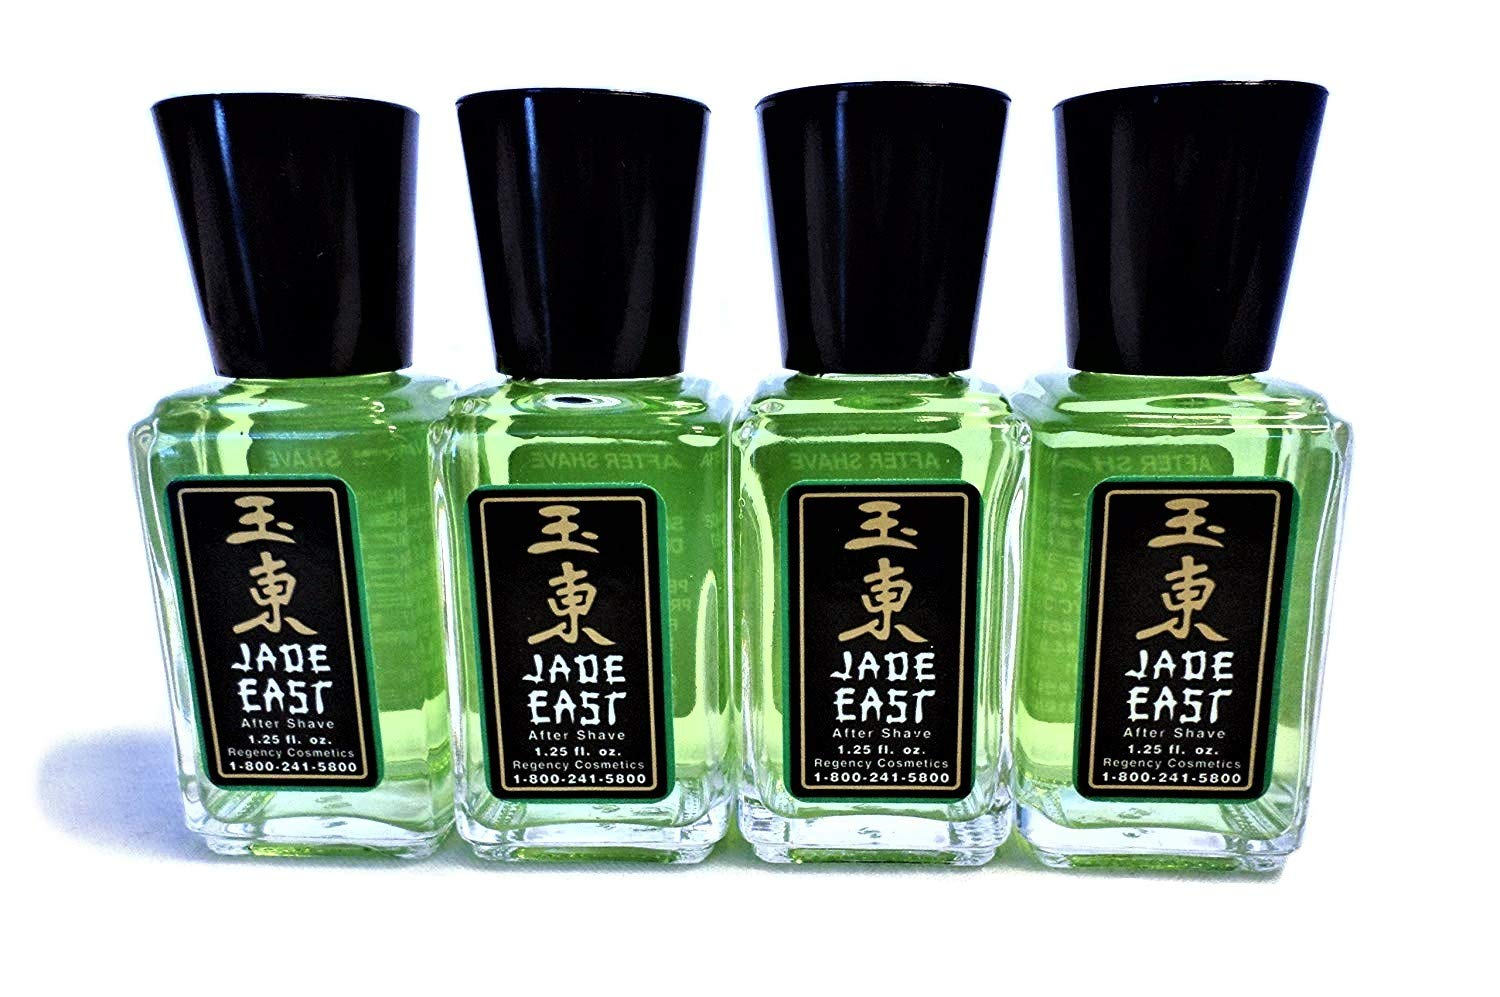 Jade East After Shave 1.25 Ounce 4 Travel Bottles by Jade East